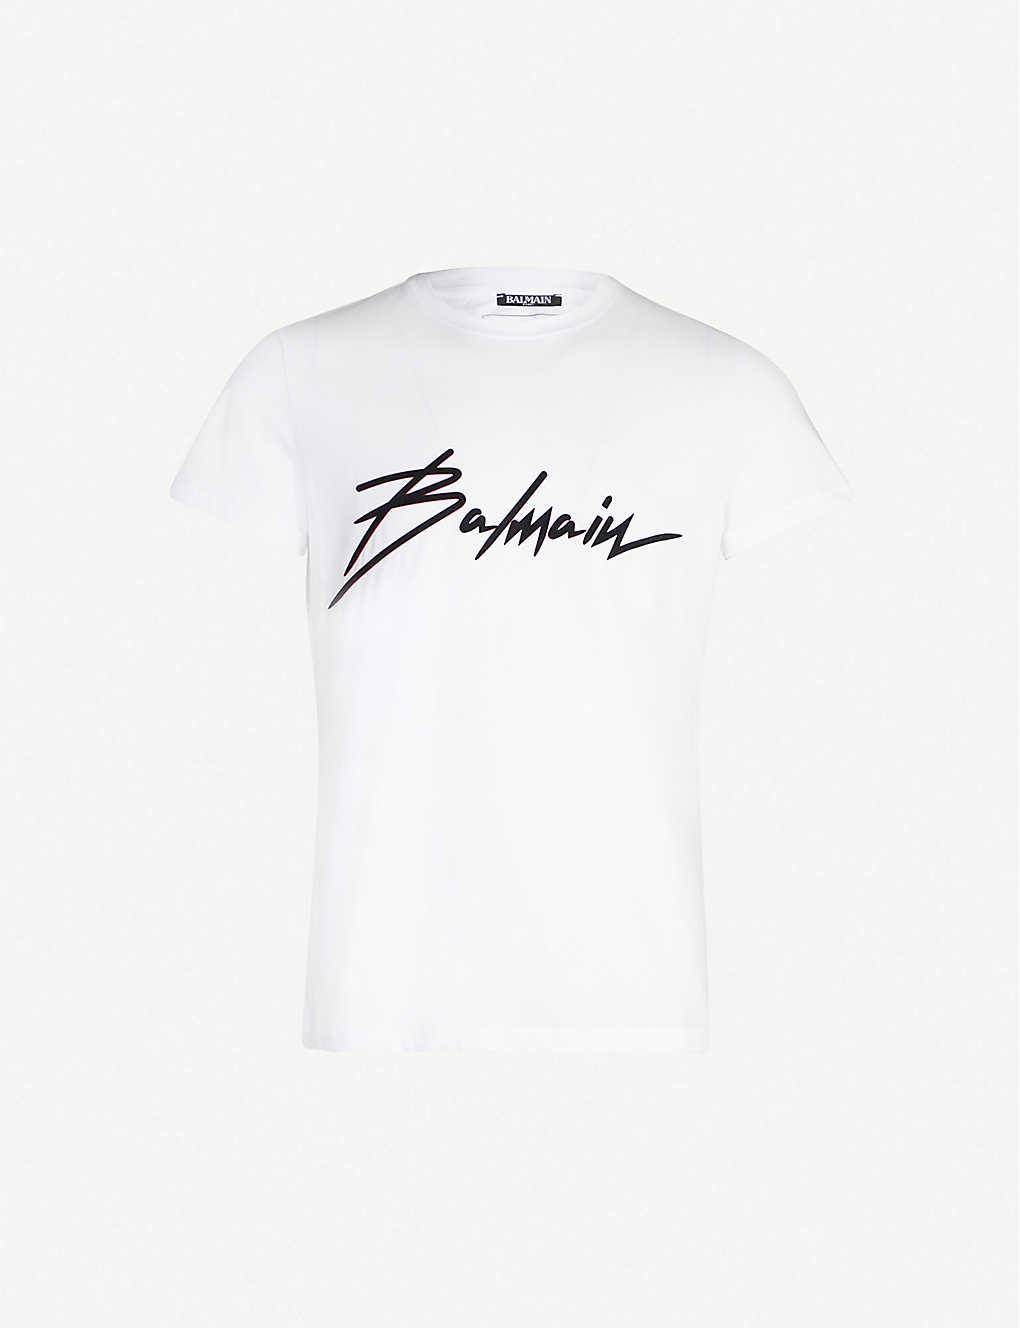 53102dd1b7b8 BALMAIN - Logo-flocked cotton-jersey T-shirt | Selfridges.com